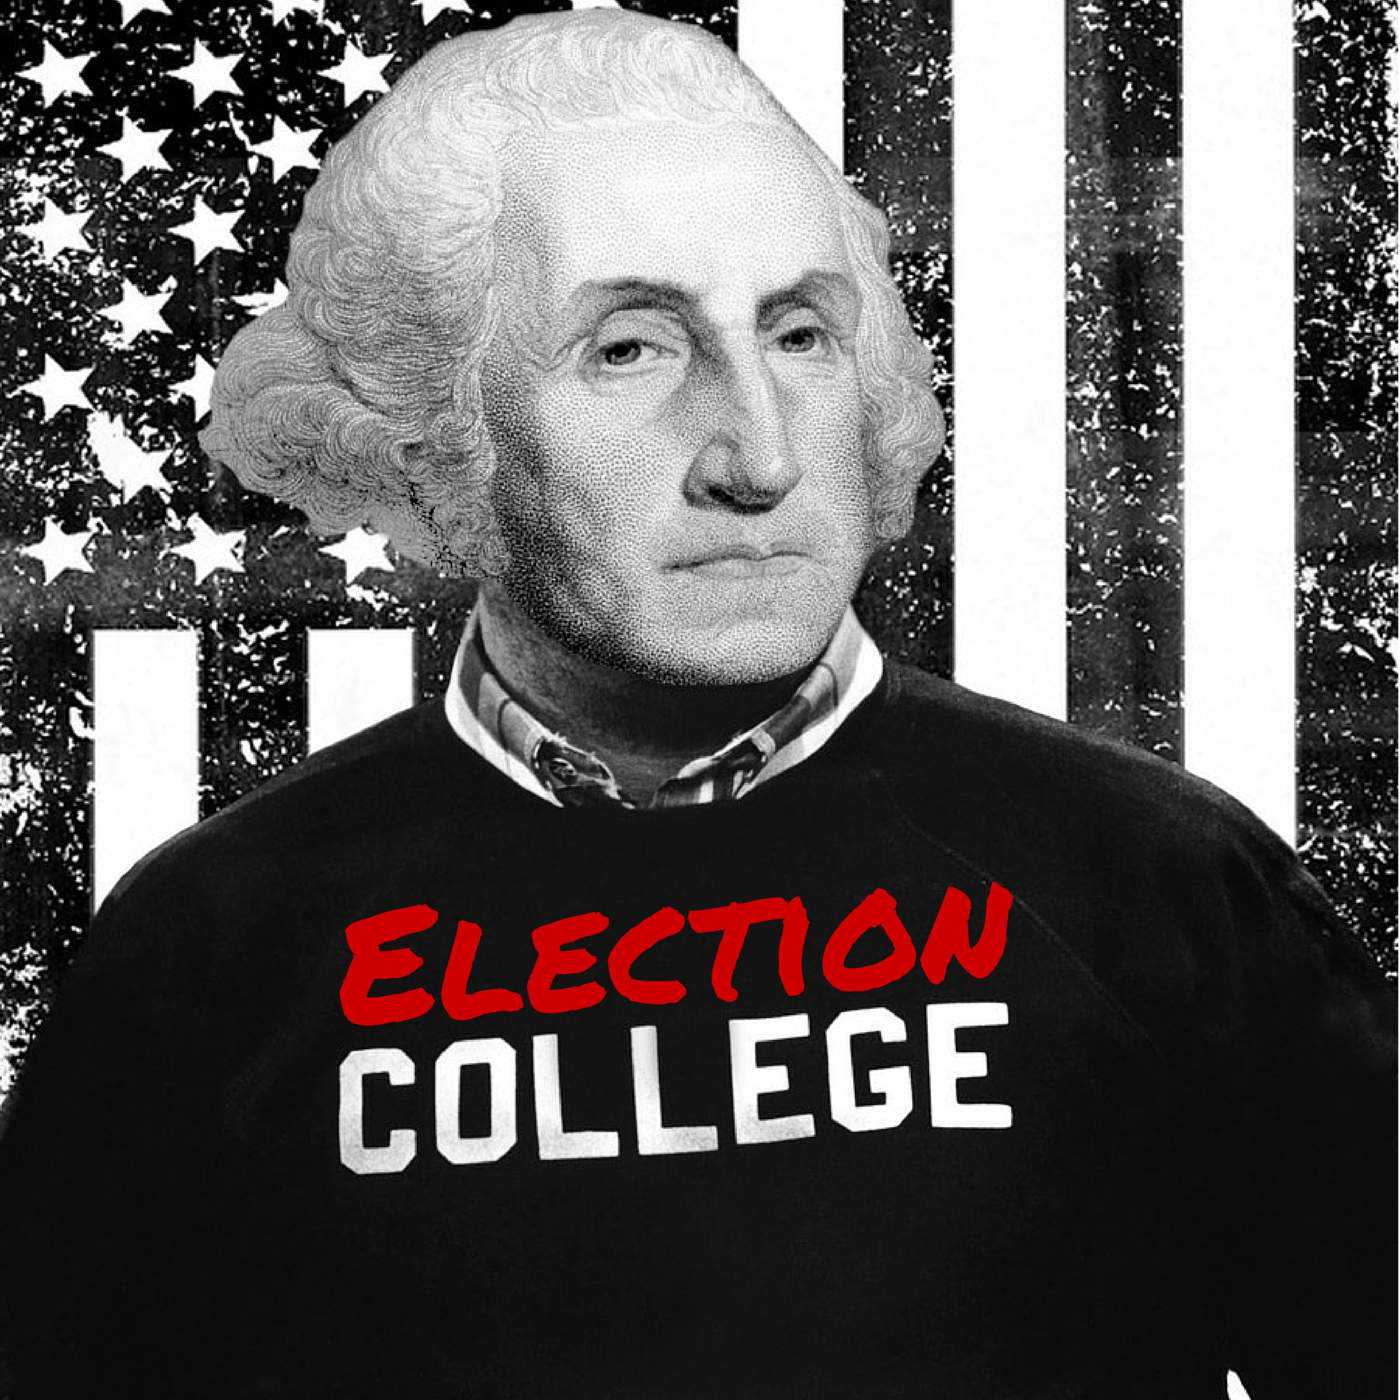 George Clinton | Episode #166 | Election College: United States Presidential Election History